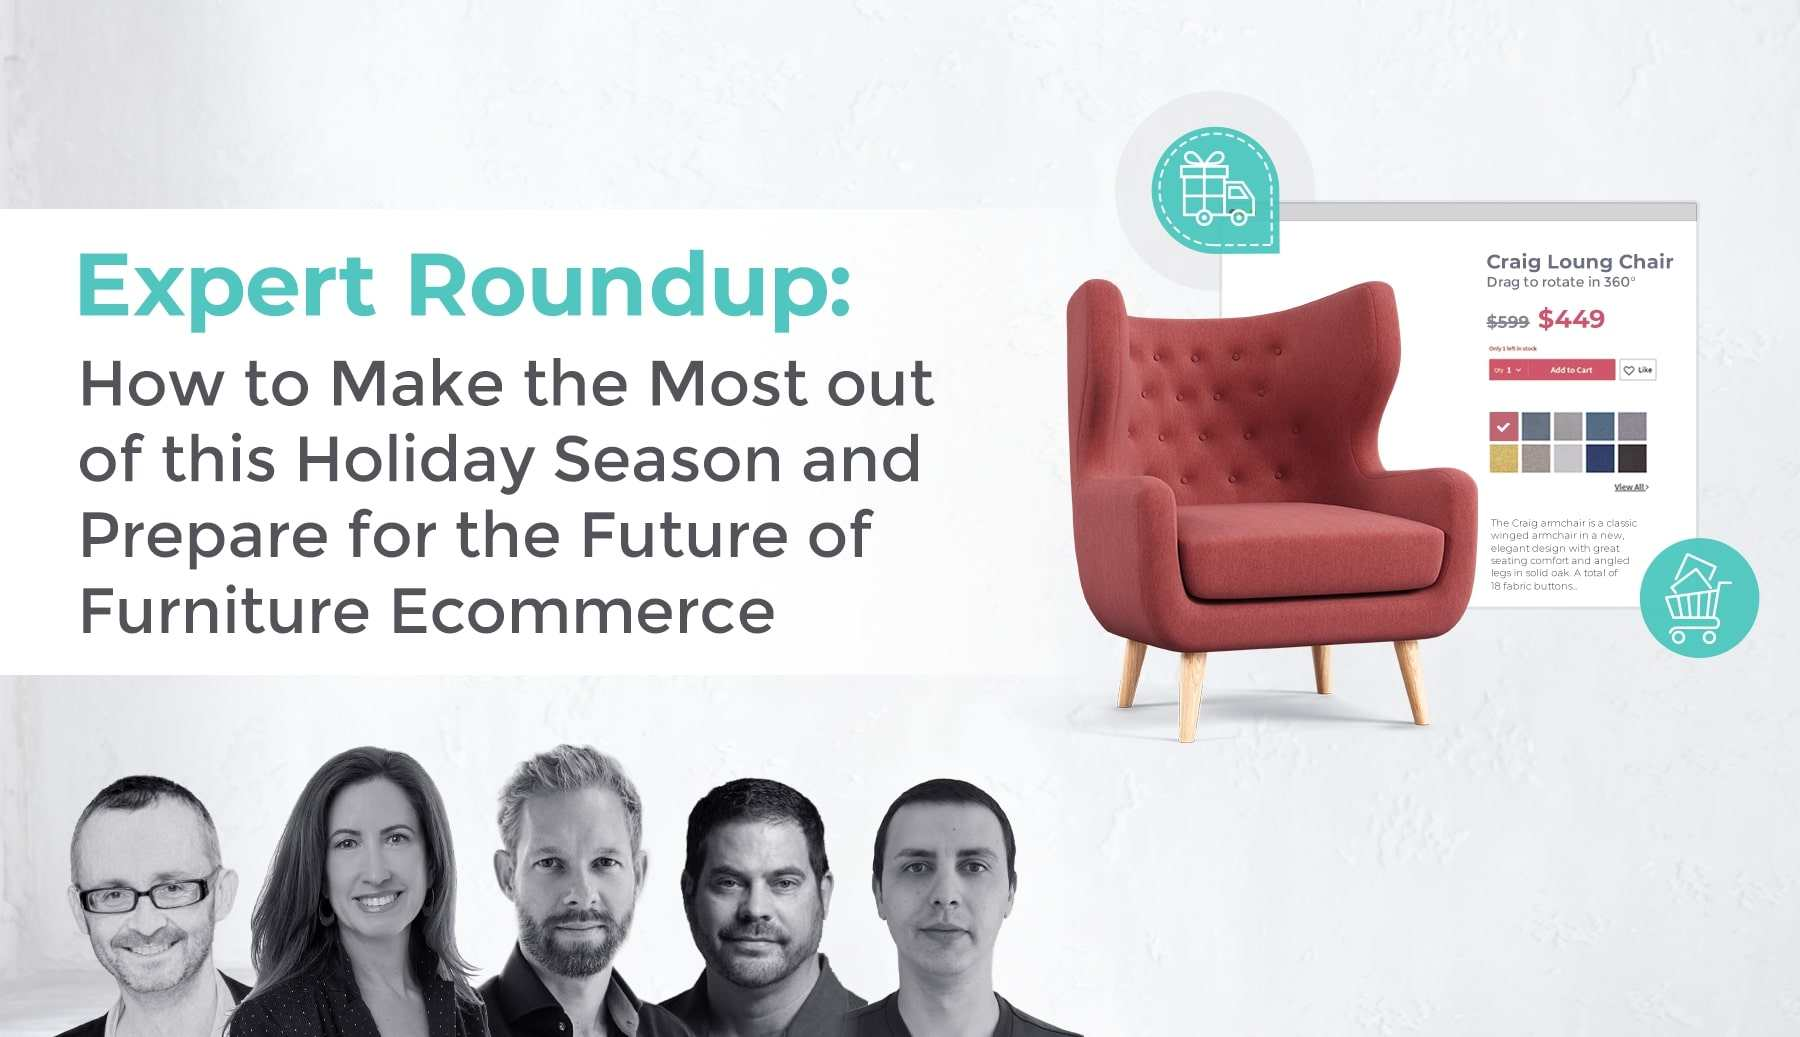 Expert Roundup: How to Make the Most out of this Holiday Season and Prepare for the Future of Furniture Ecommerce